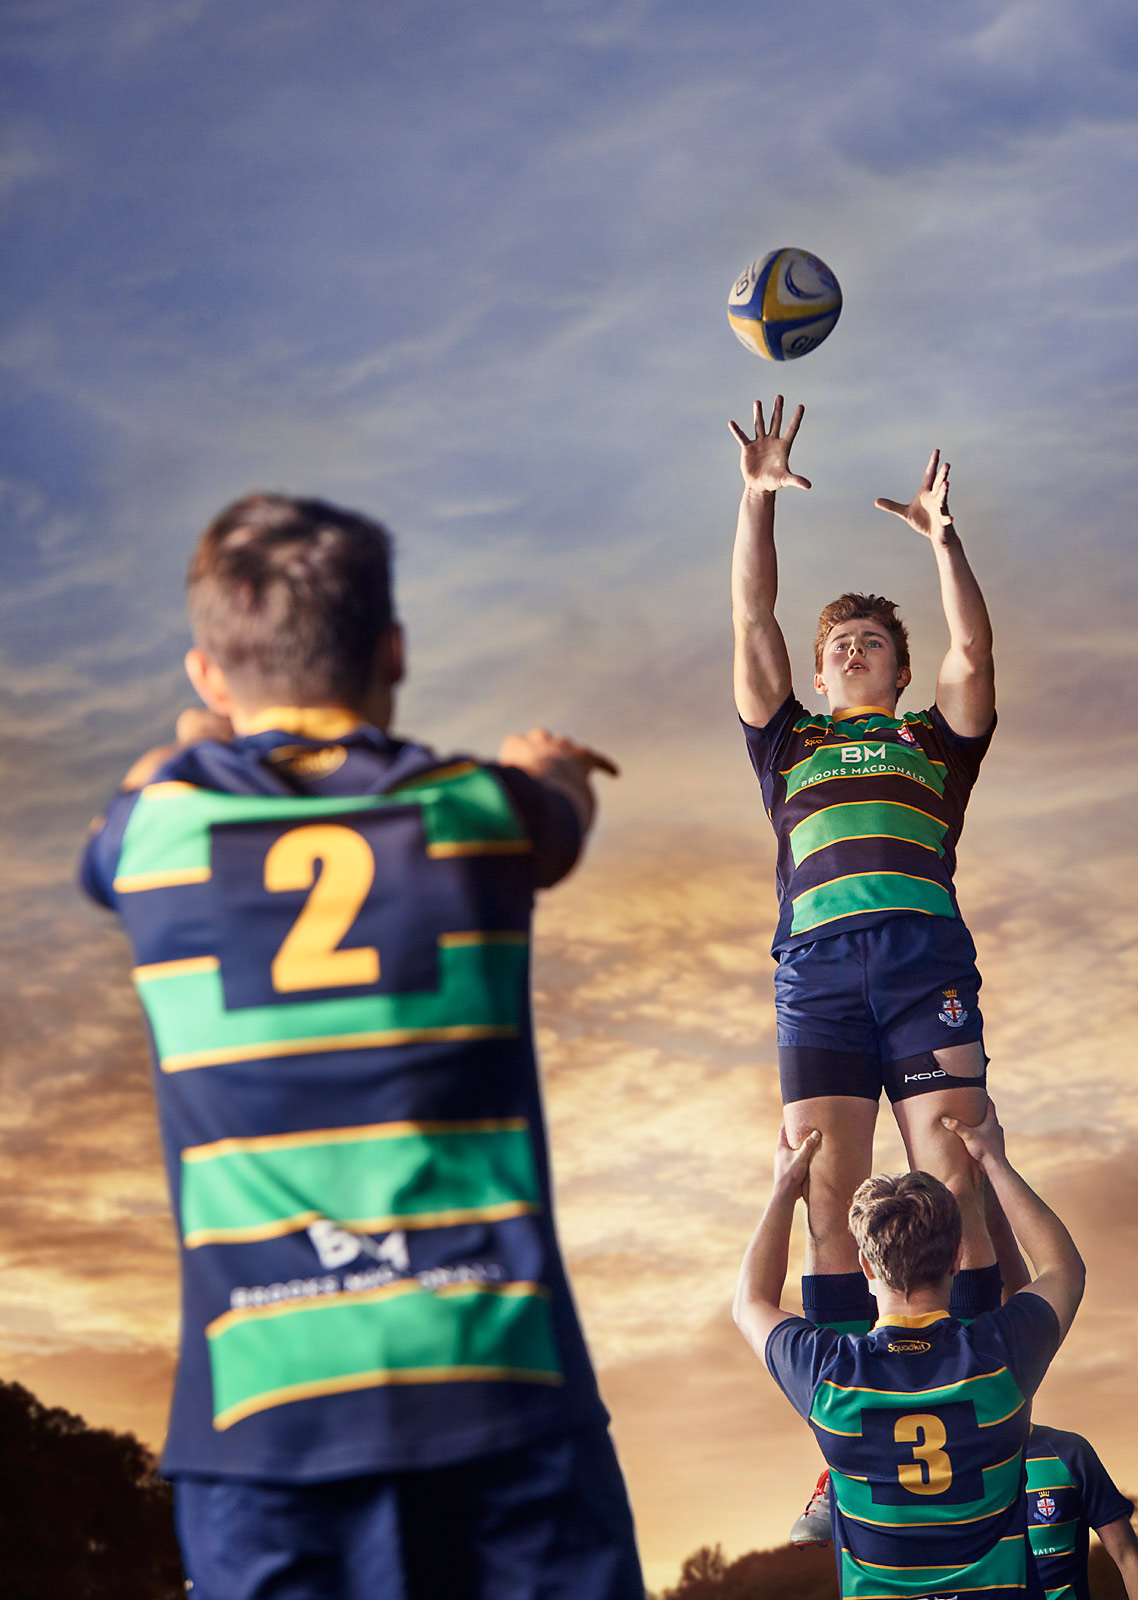 A boy jumps for a lineout during rugby training at the Royal Hospital School